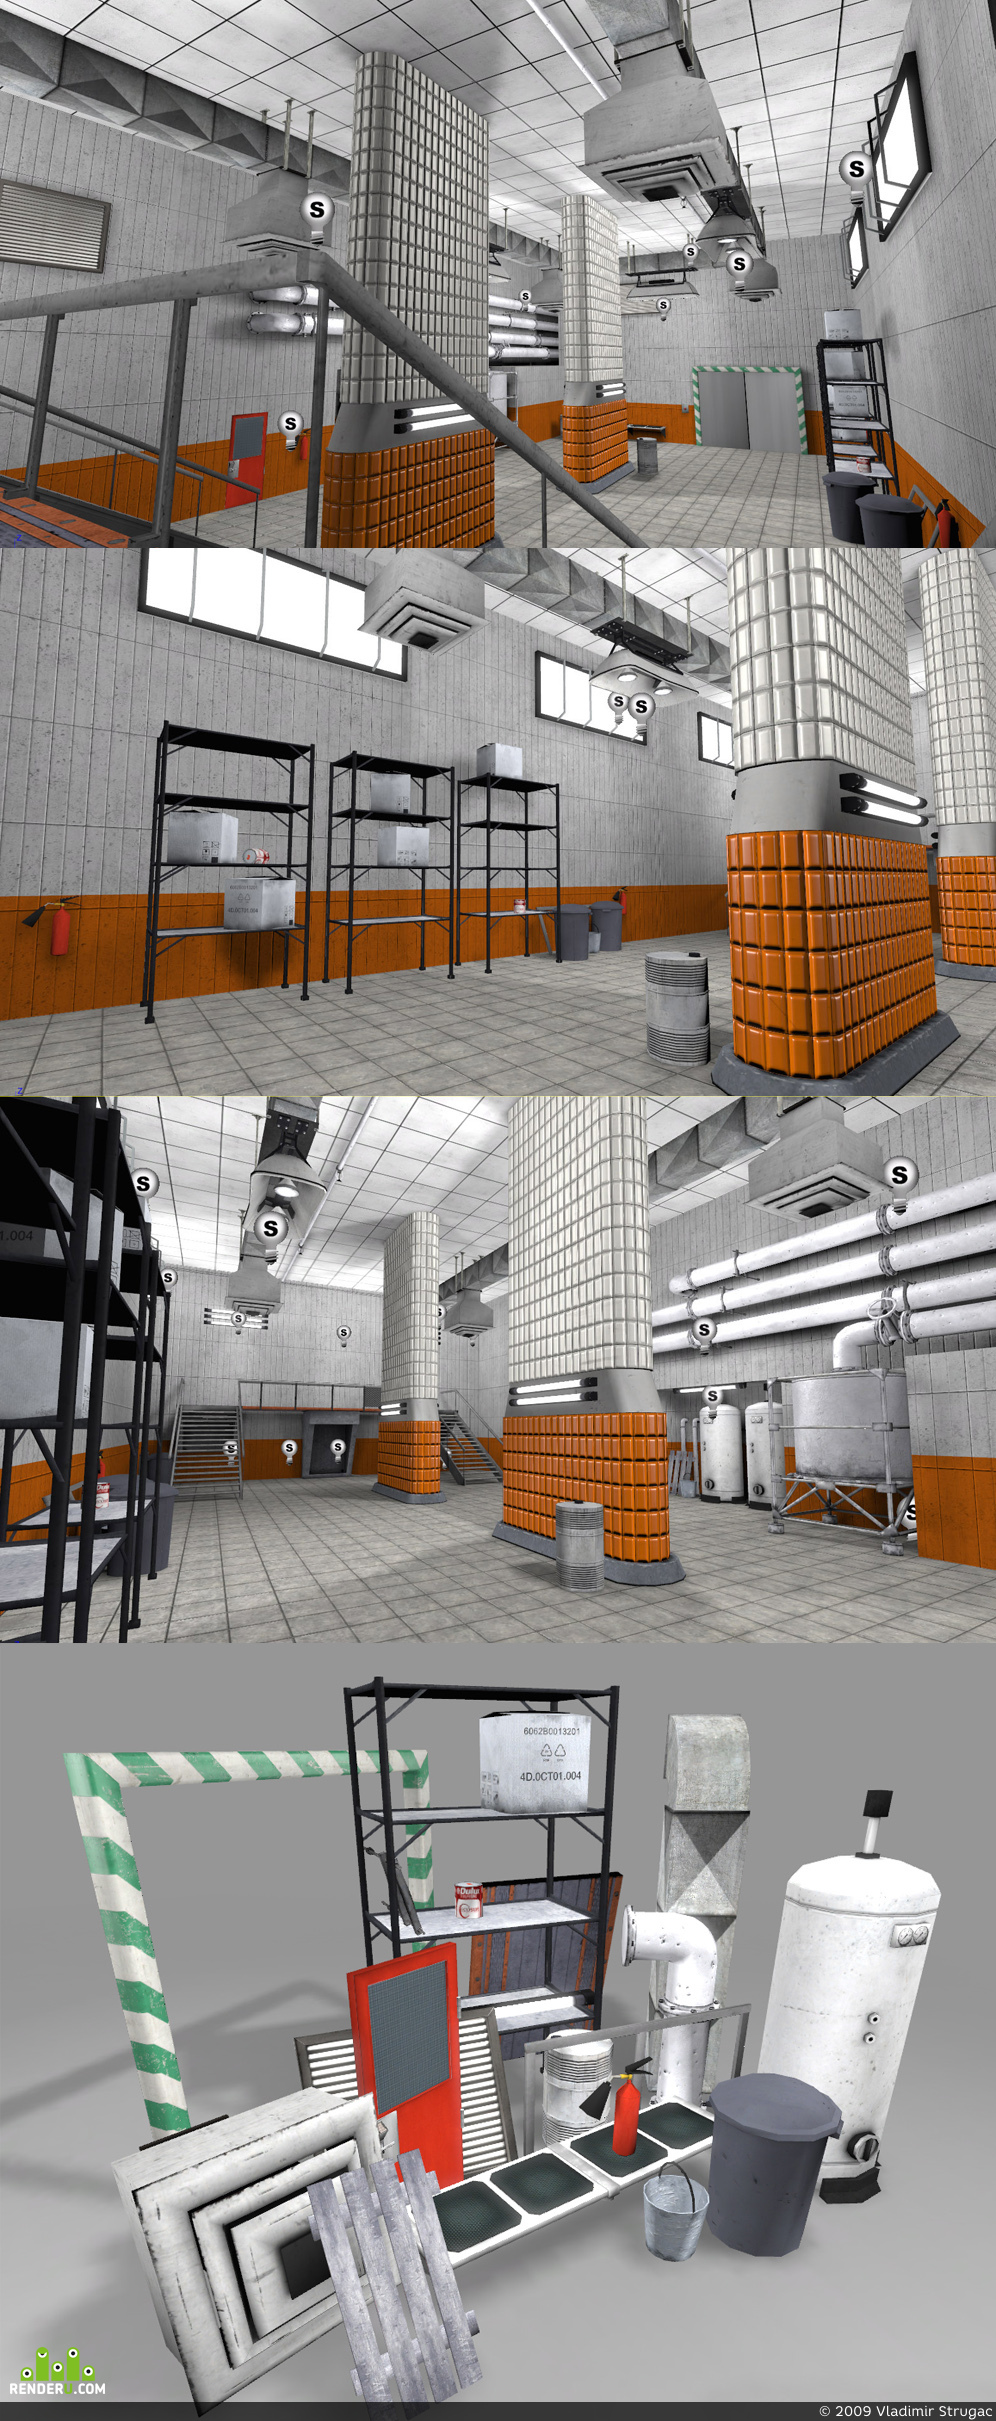 preview Industrial room (Environment)